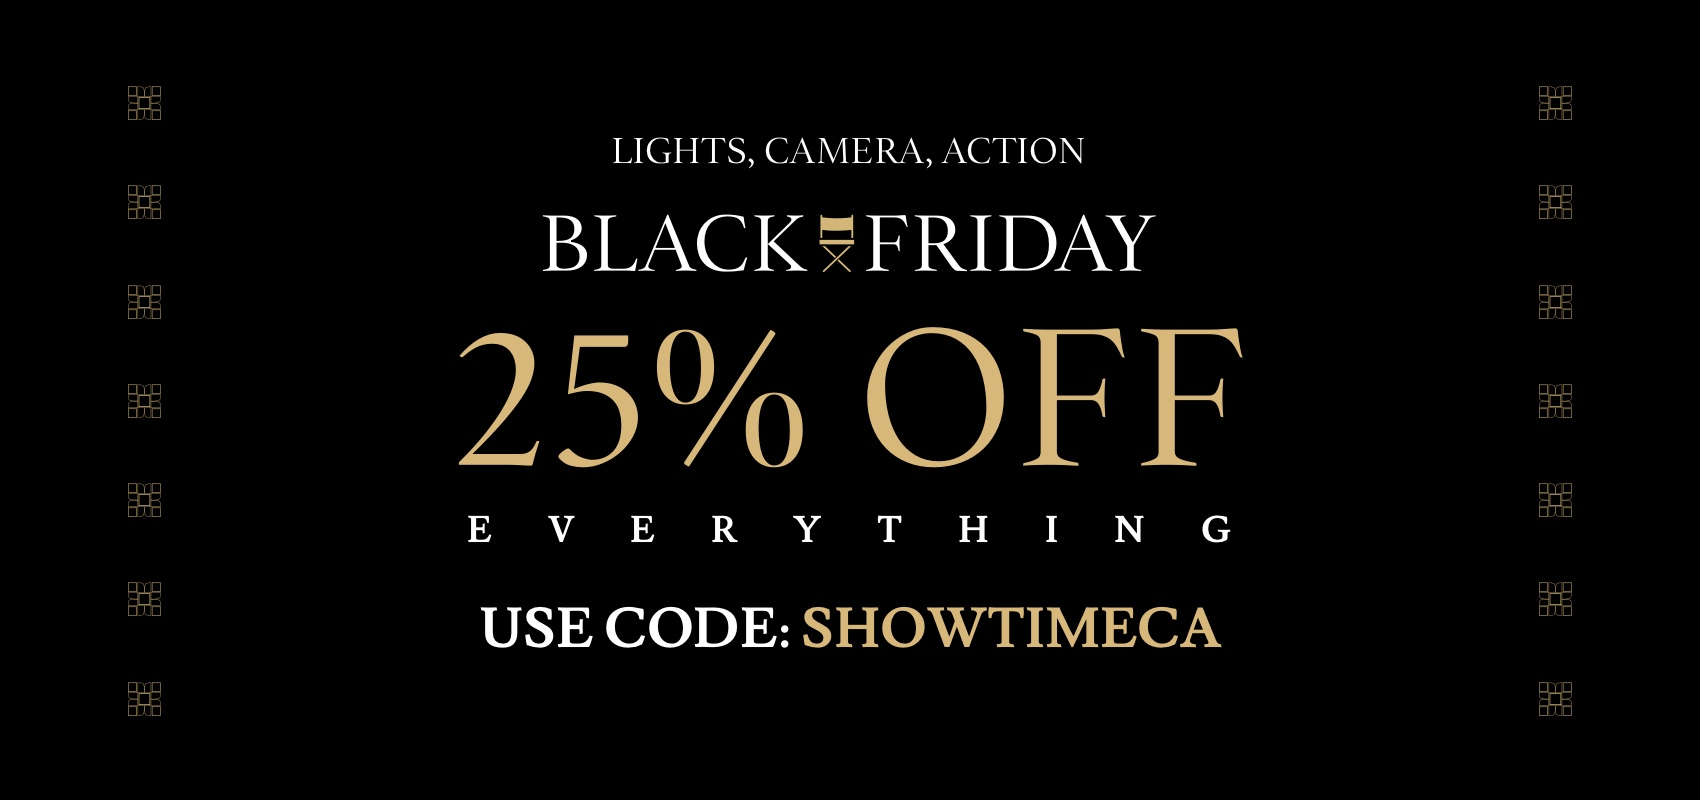 Charles Tyrwhitt Black Friday 25% off everything with code SHOWTIMECA